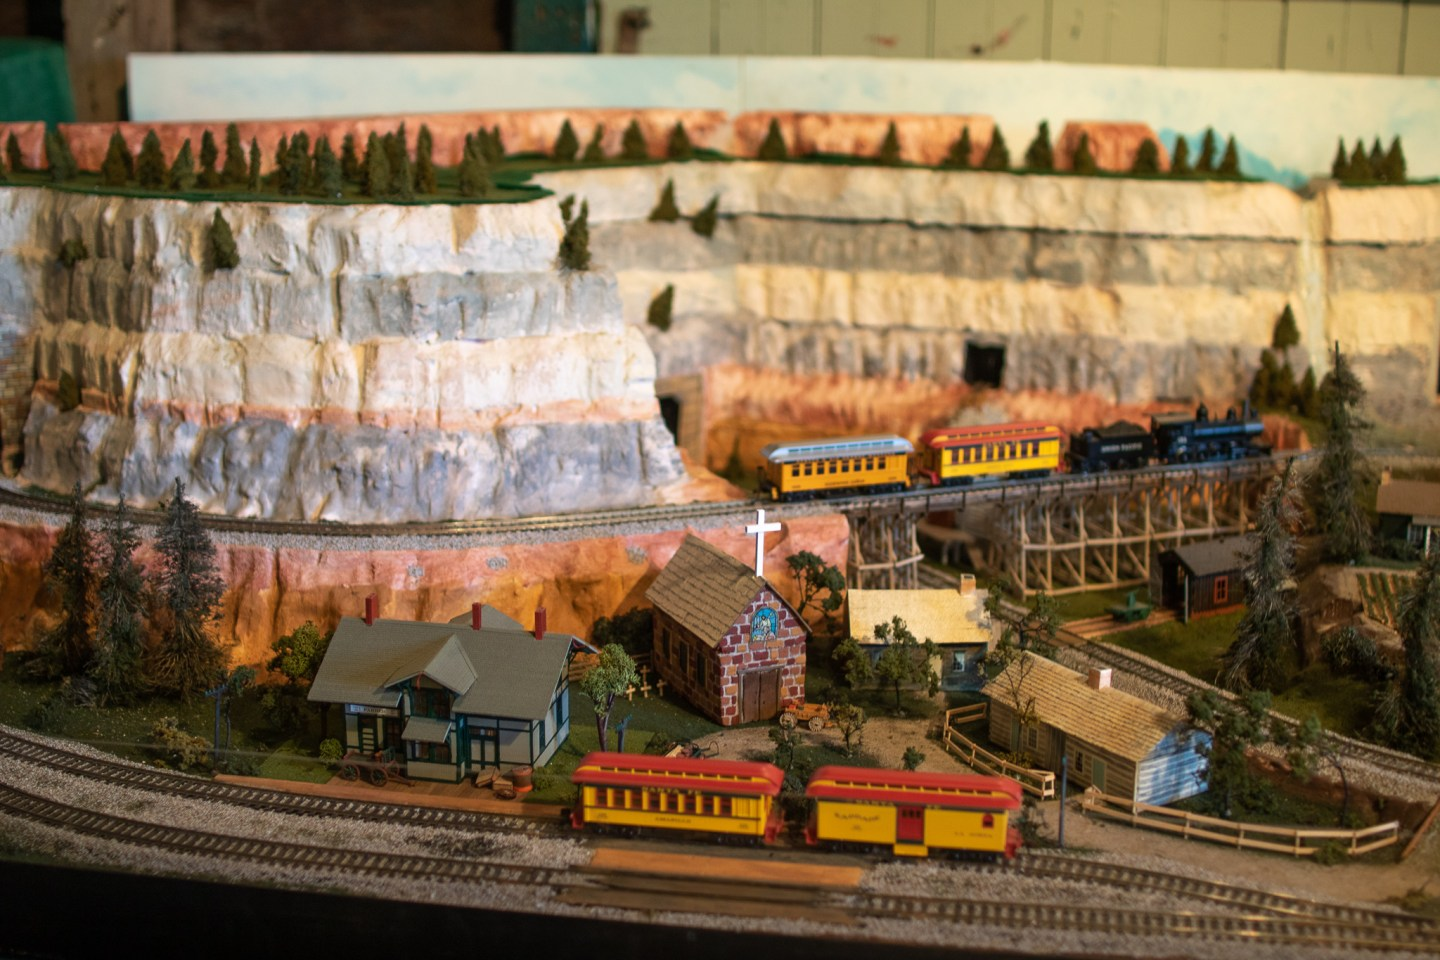 model trains inside the Chicago Alton railroad depot in Independence Missouri